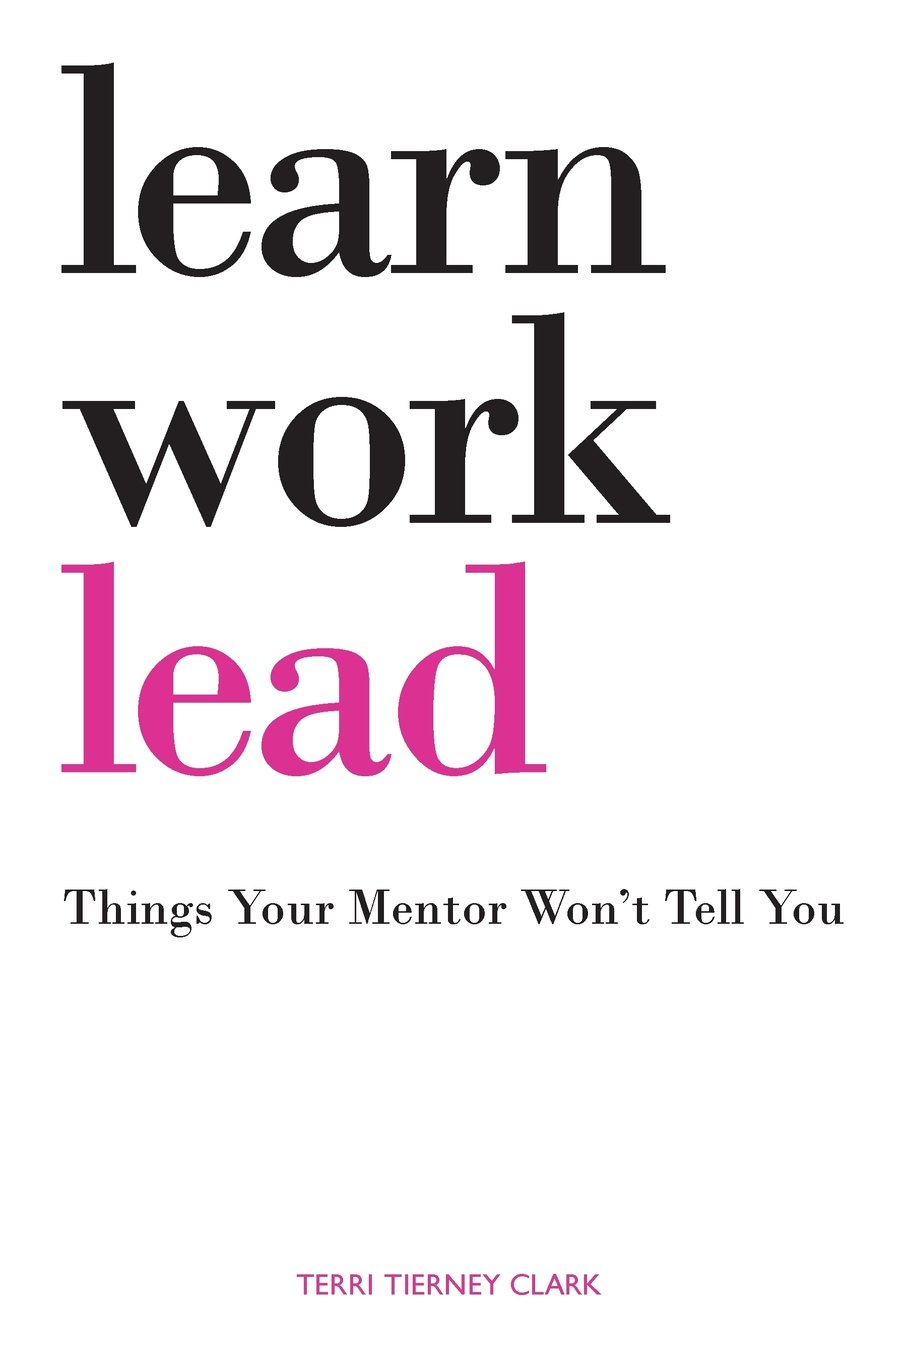 Amazon.com: Learn, Work, Lead (9780768938937): Terri Tierney Clark: Books